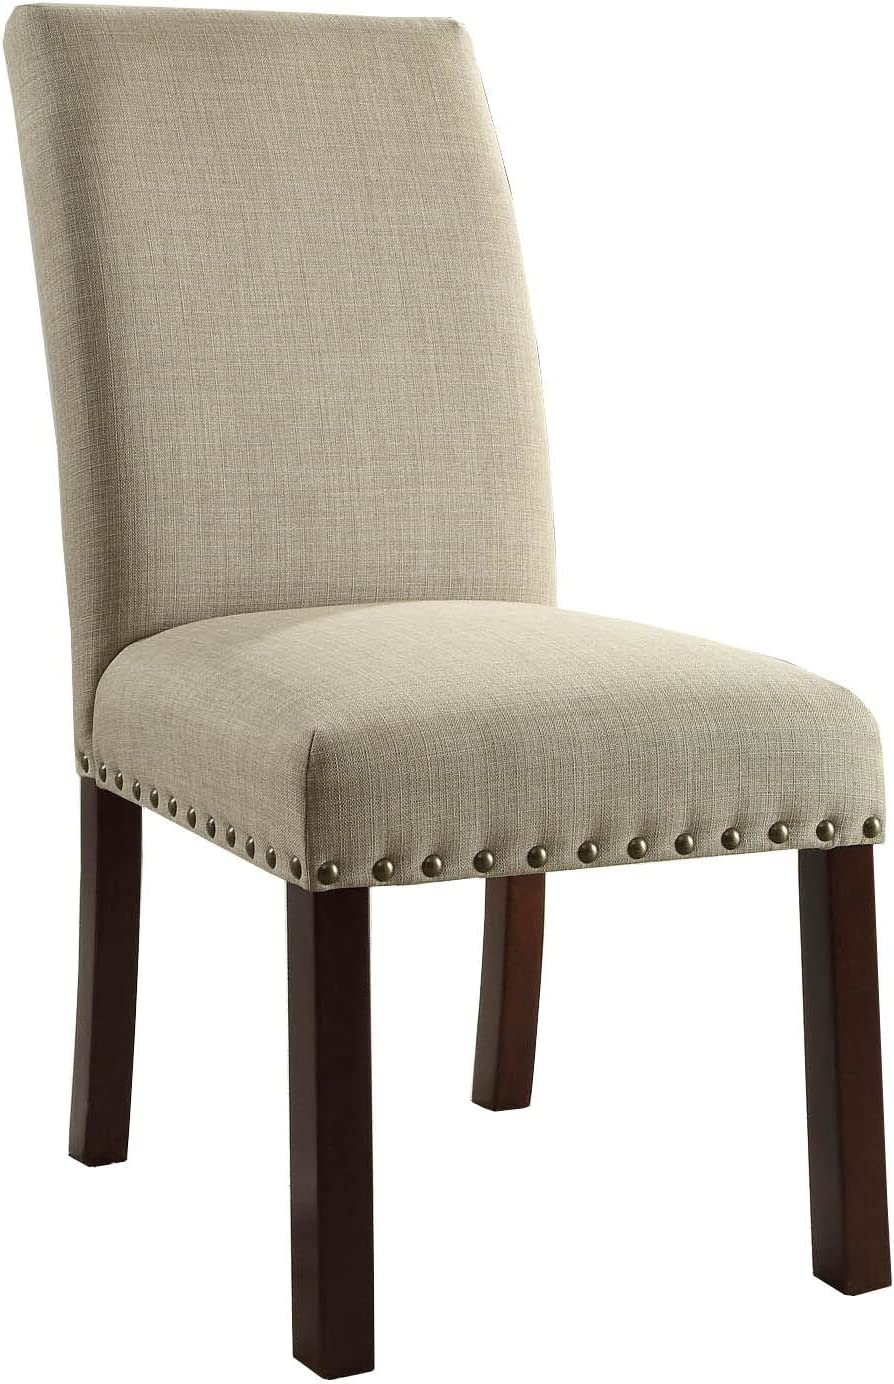 Homepop Parsons Classic Dining Chair With Nailhead Trim Set Of 2 Natural Linen Chairs